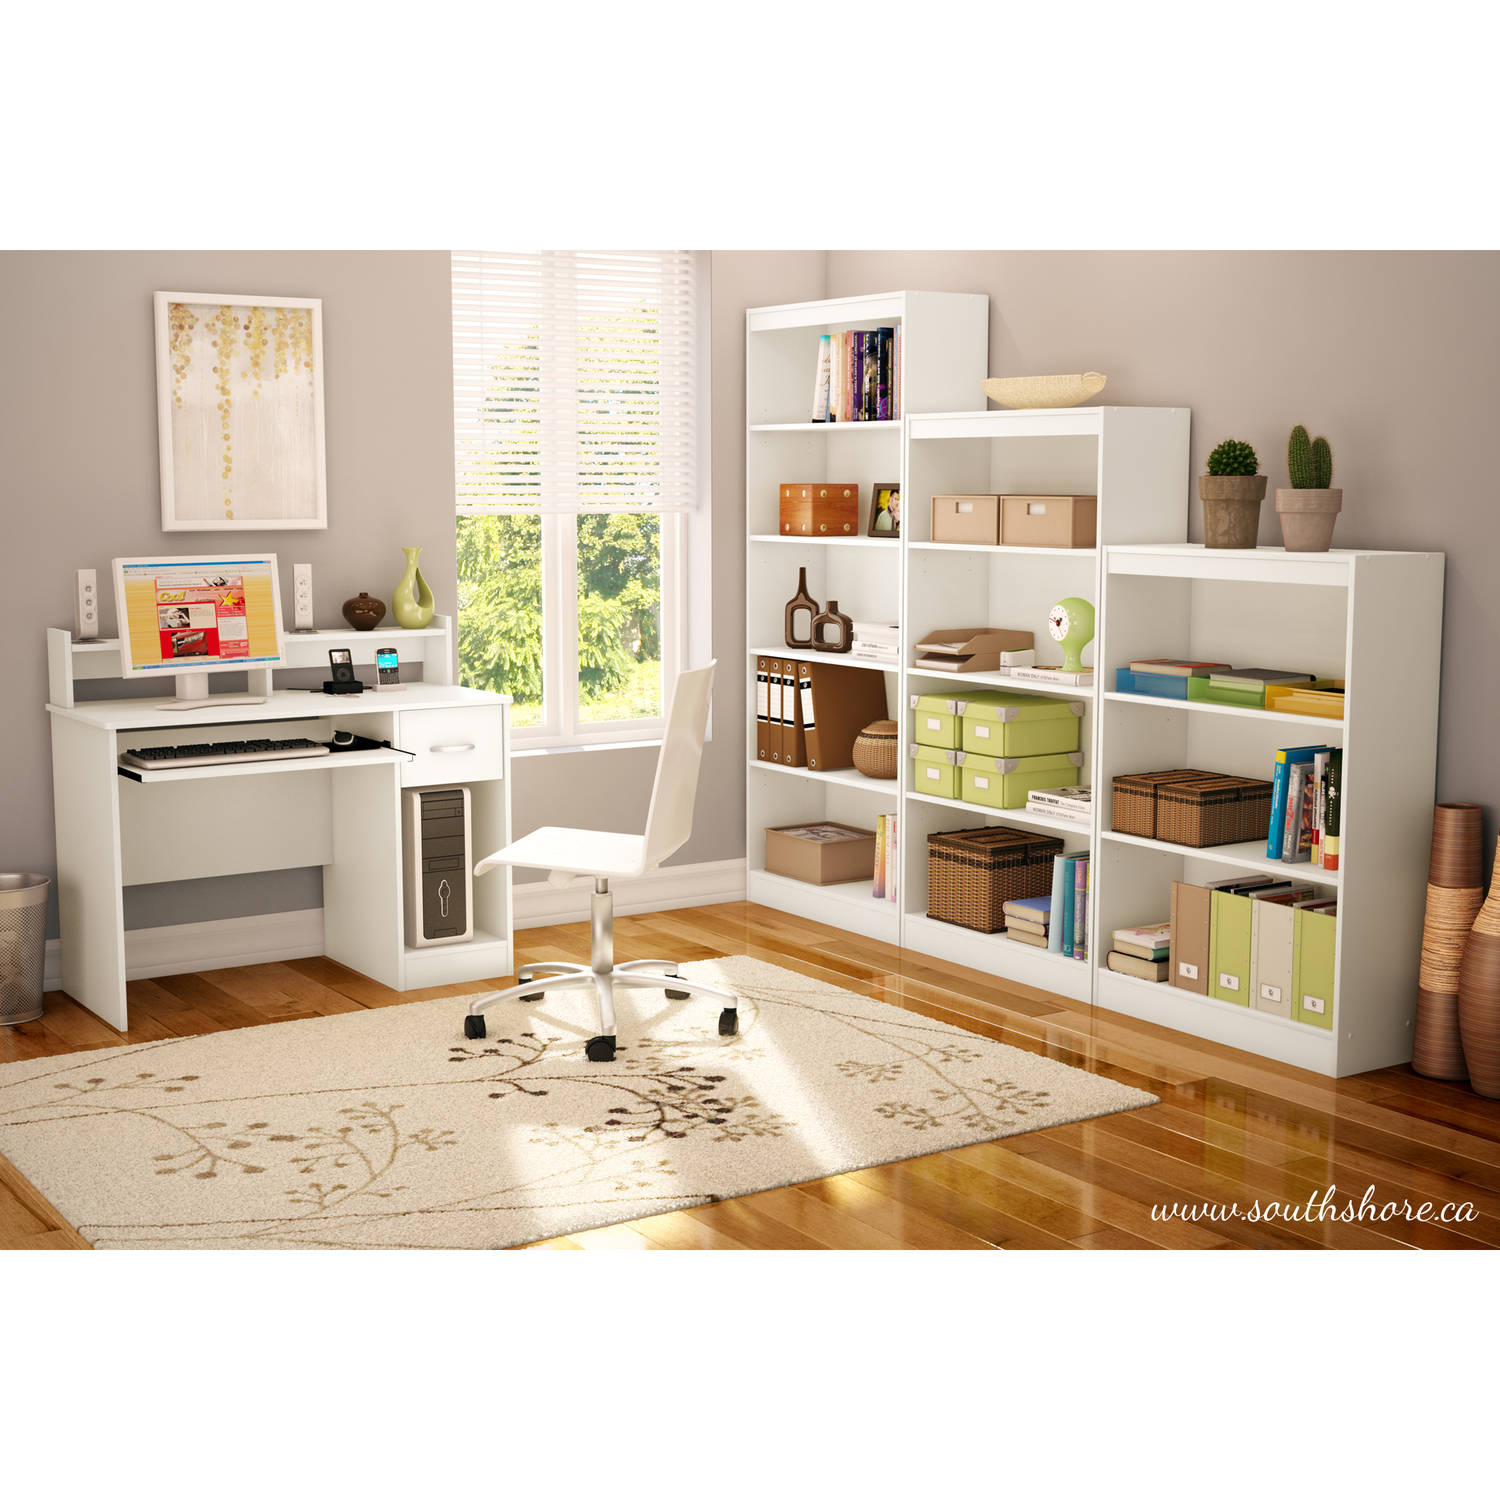 South Shore Smart Basics Home Office and Storage Furniture Collection